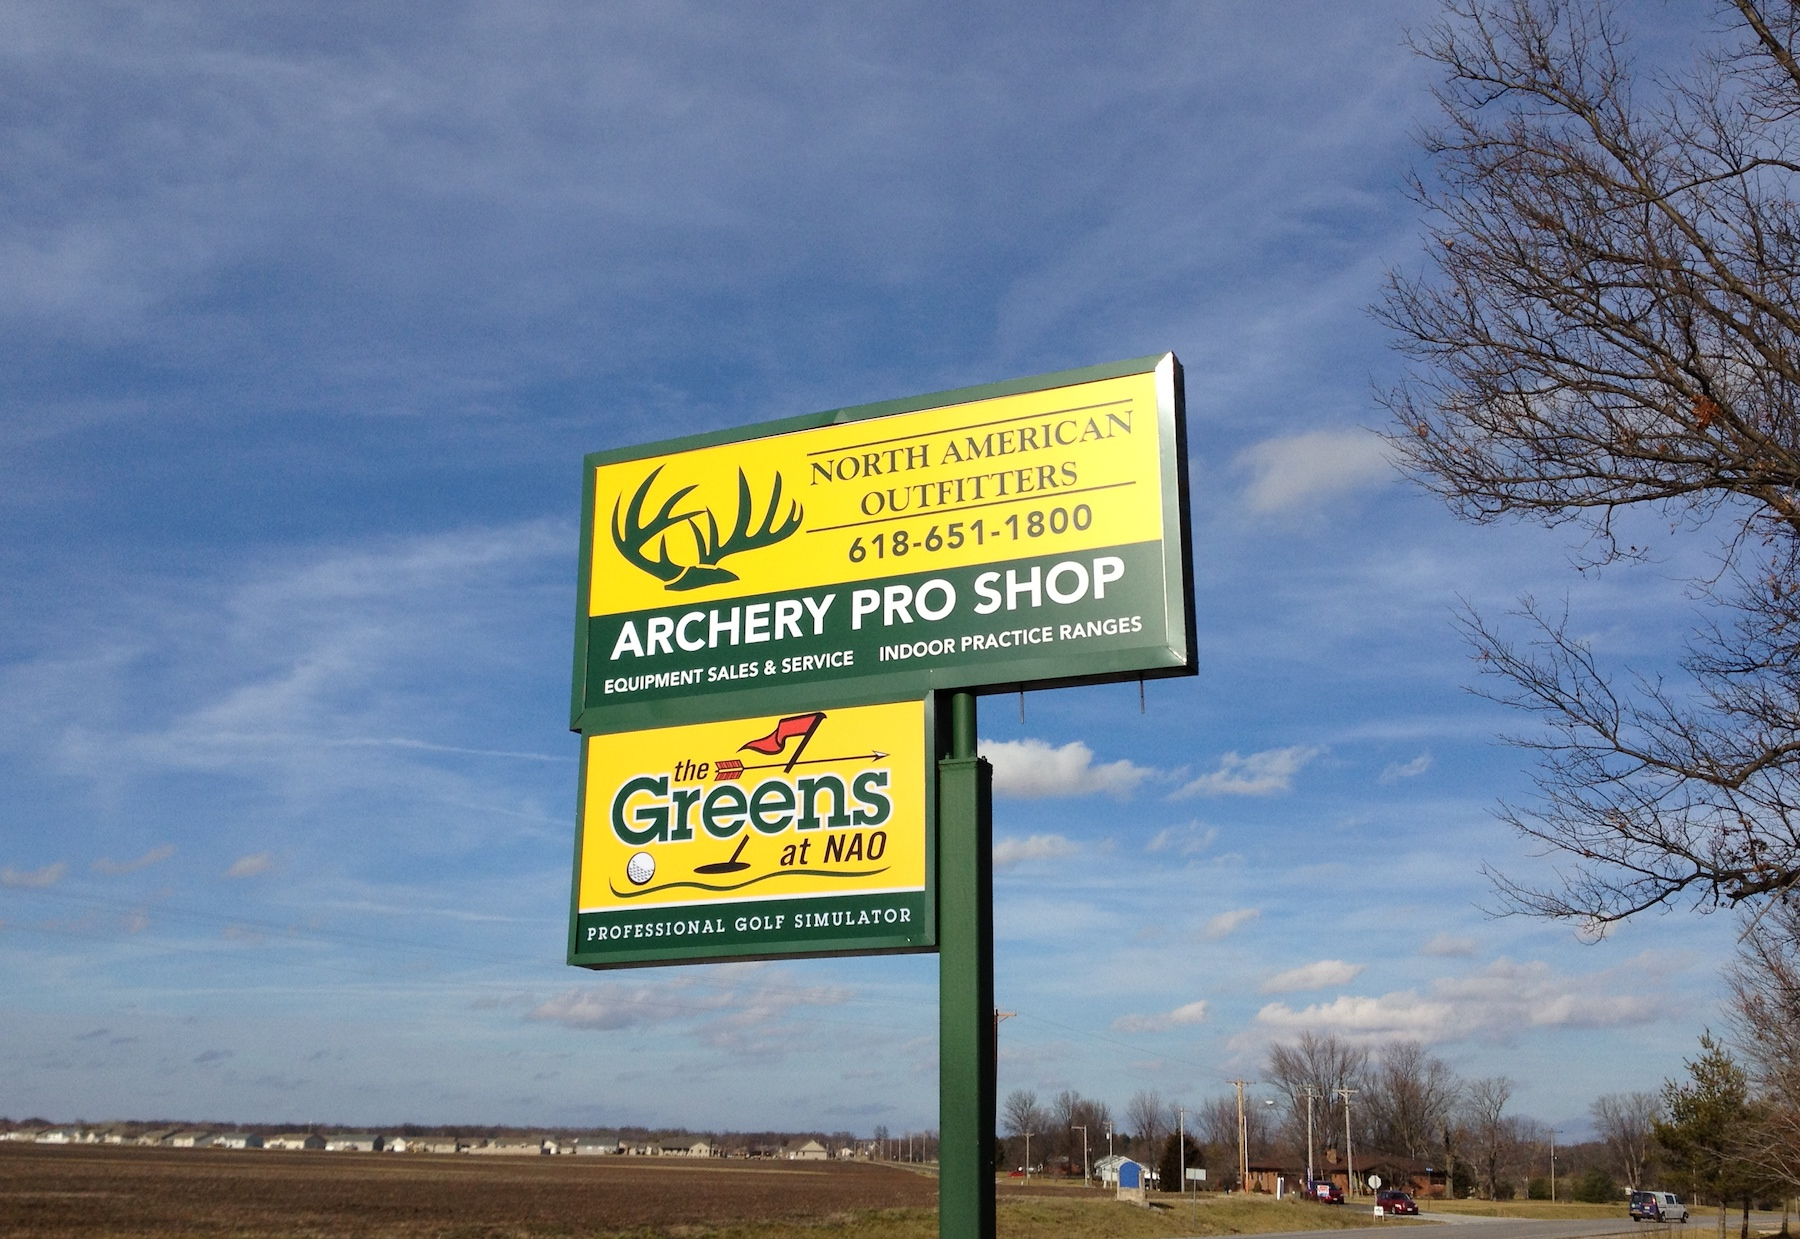 North American Outfitters Archery Pro Shop